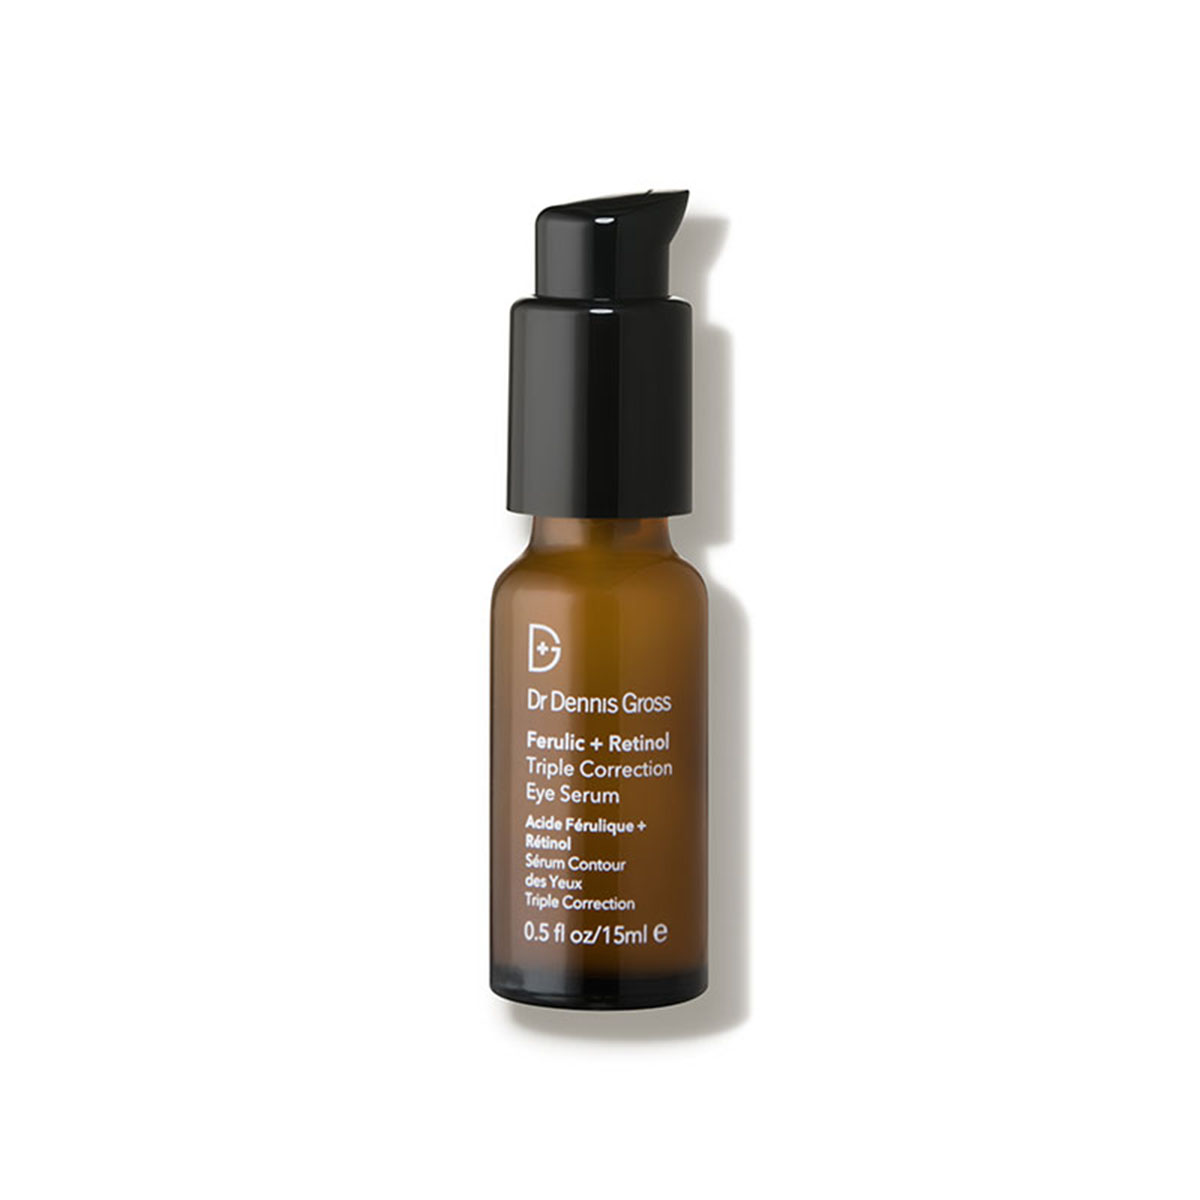 Dr. Dennis Gross Skincare Ferulic and Retinol Triple Correction Eye Serum